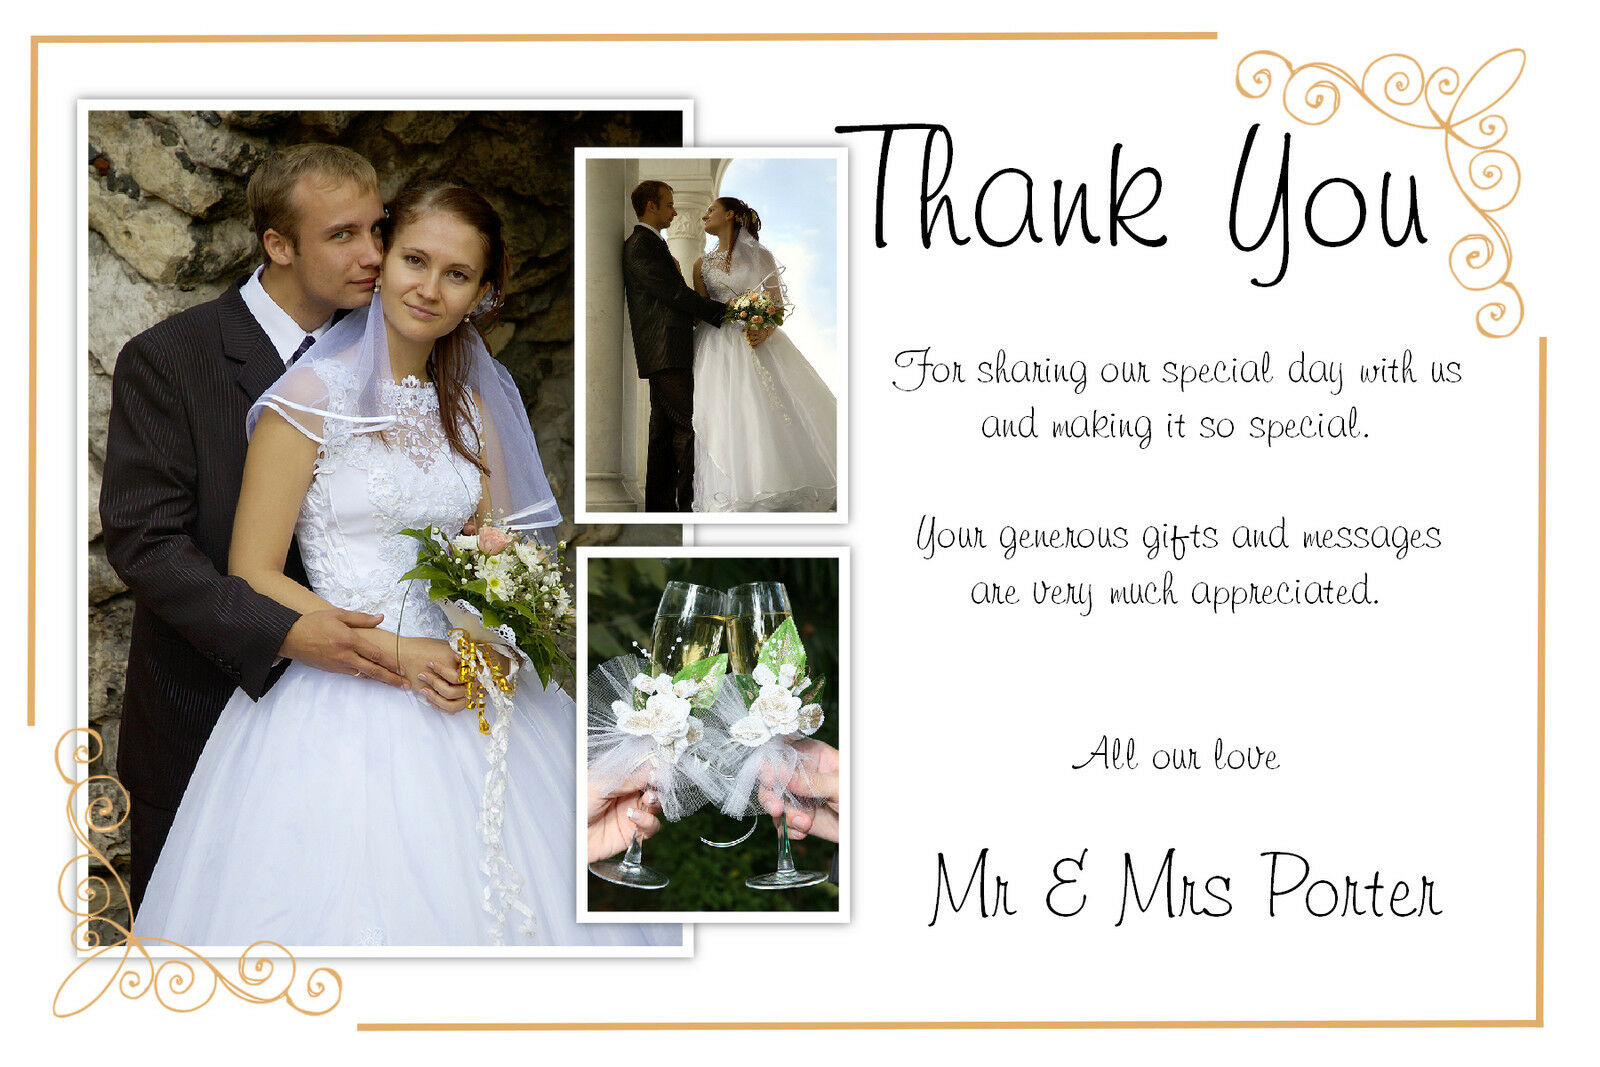 i am a fan of the personalized thank you note but my experience up to now has been receiving a generic thank you and photo of the couple which to me is